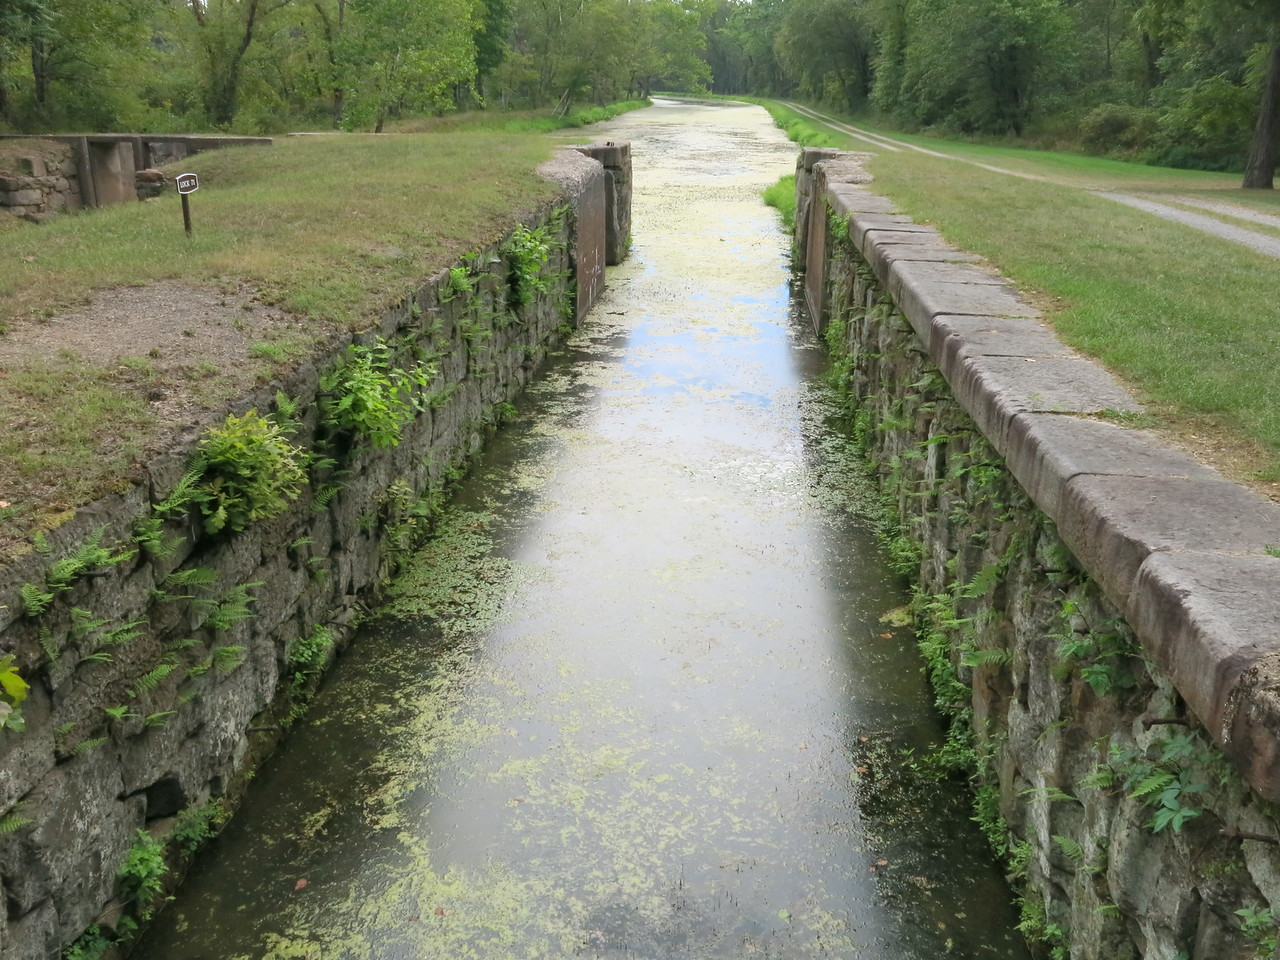 Lock 71 in a downstream view